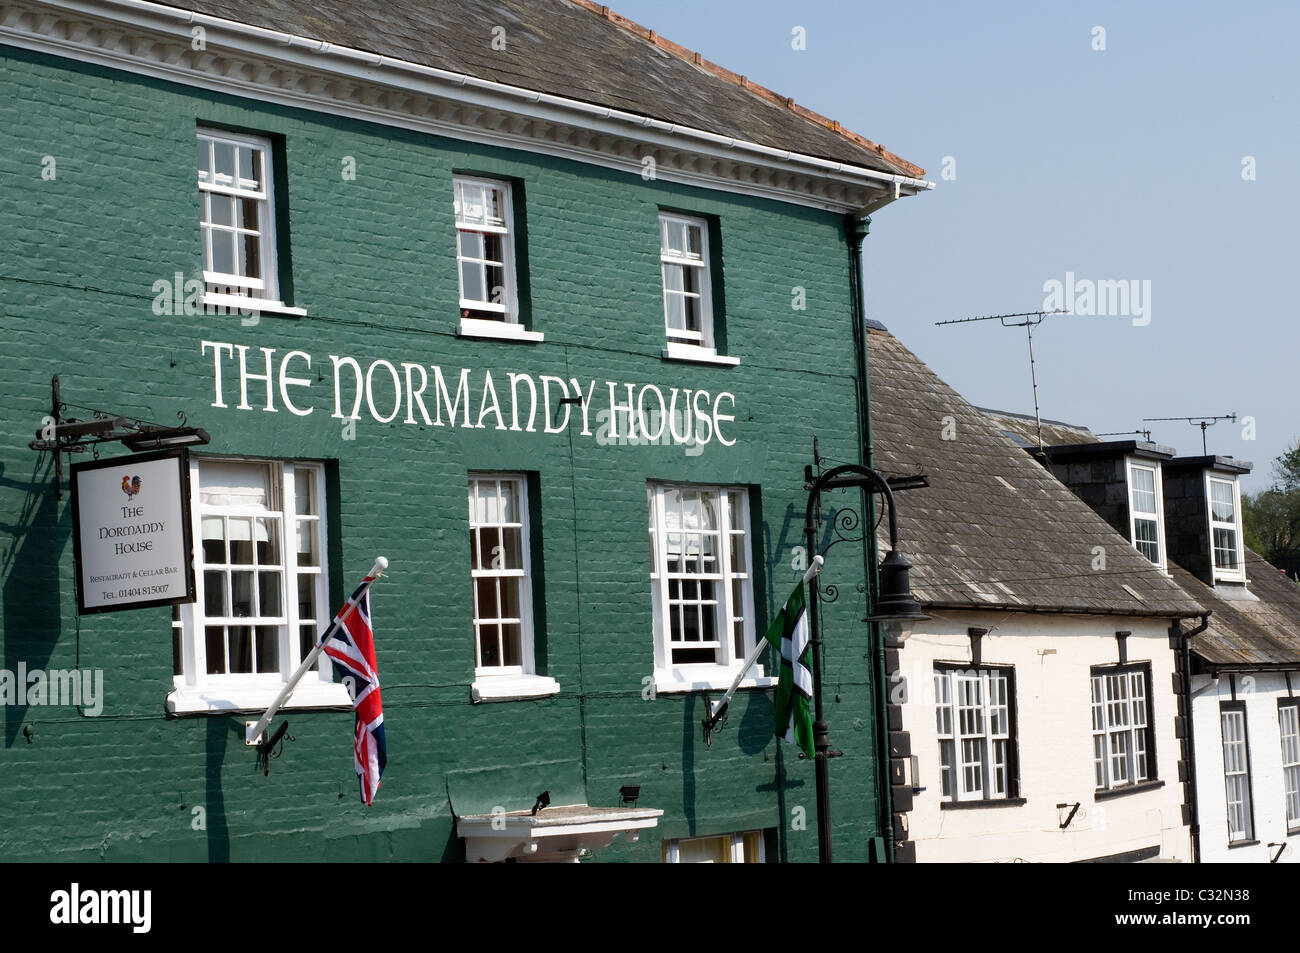 The Normandy House And Buildings In Ottery St Mary Devon High Resolution Stock Photography And Images Alamy